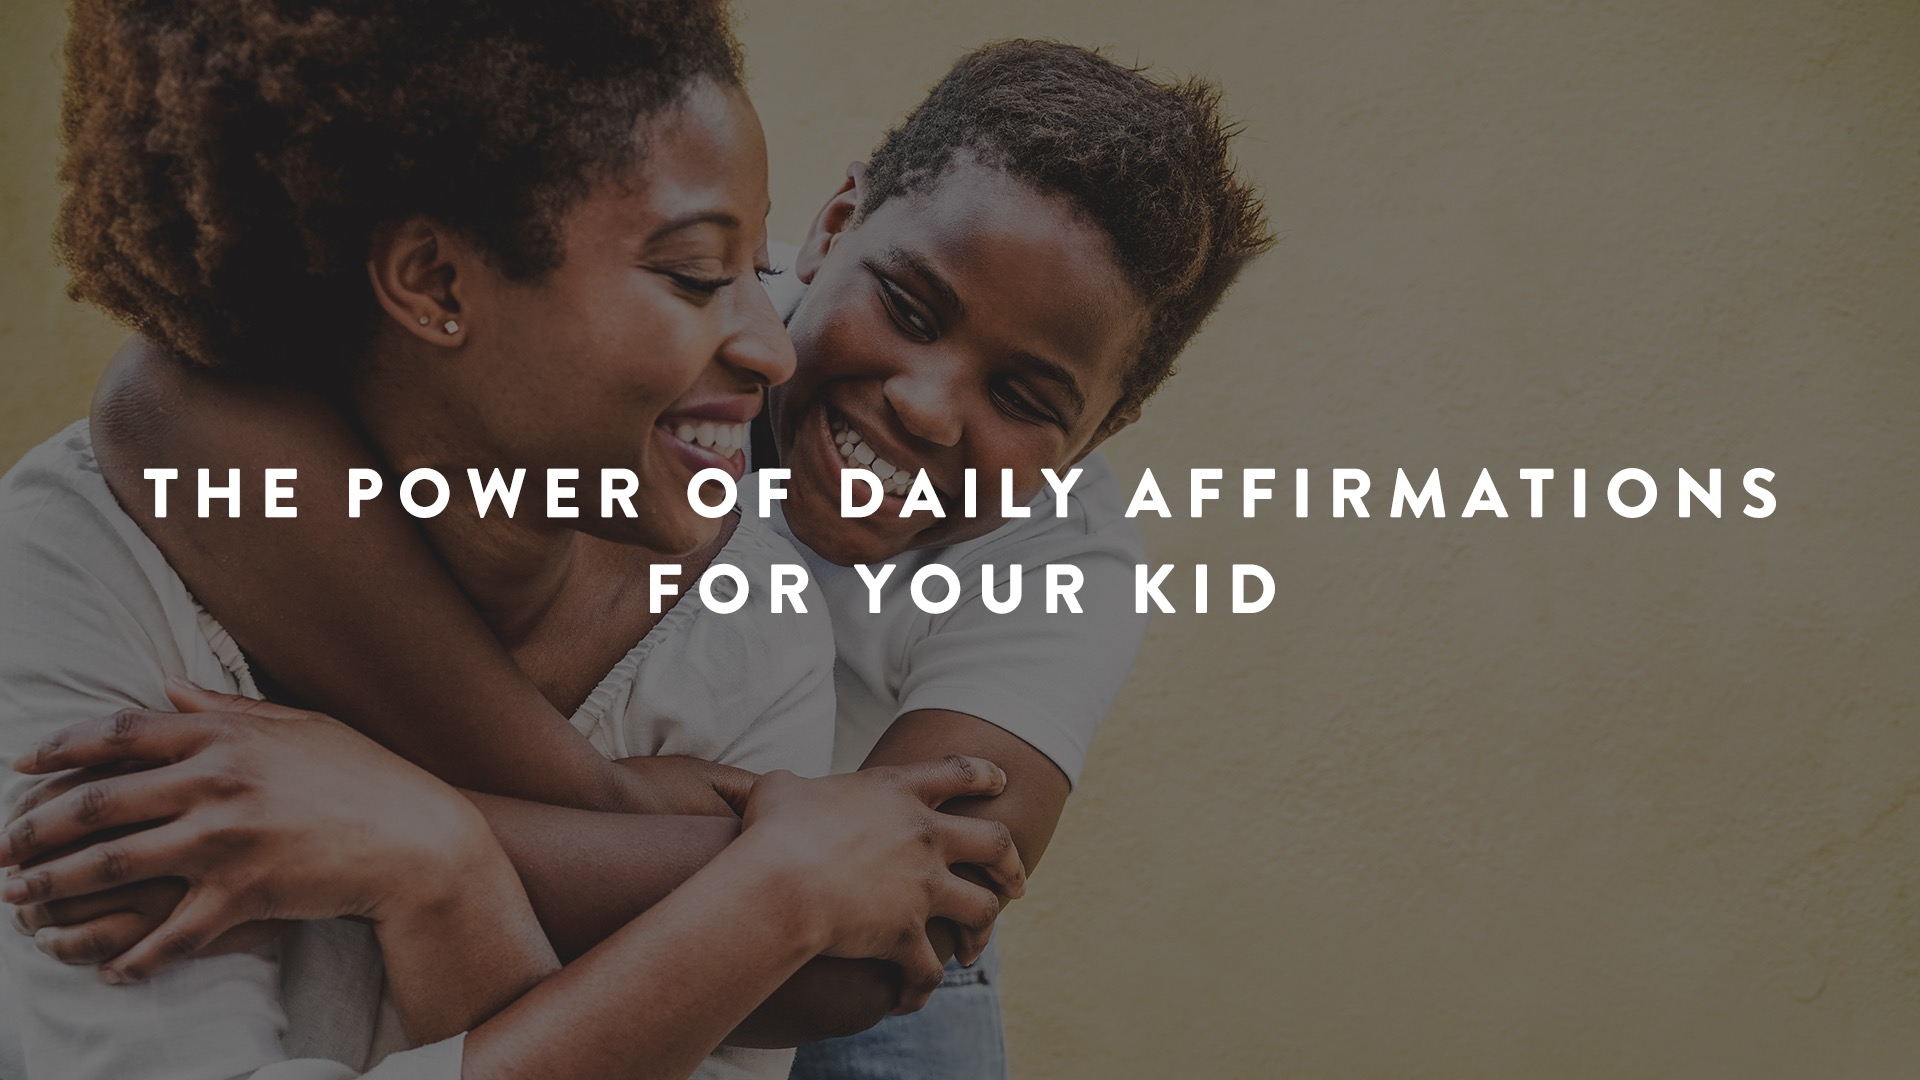 The Power of Daily Affirmations for Your Kid | Parent Cue Blog